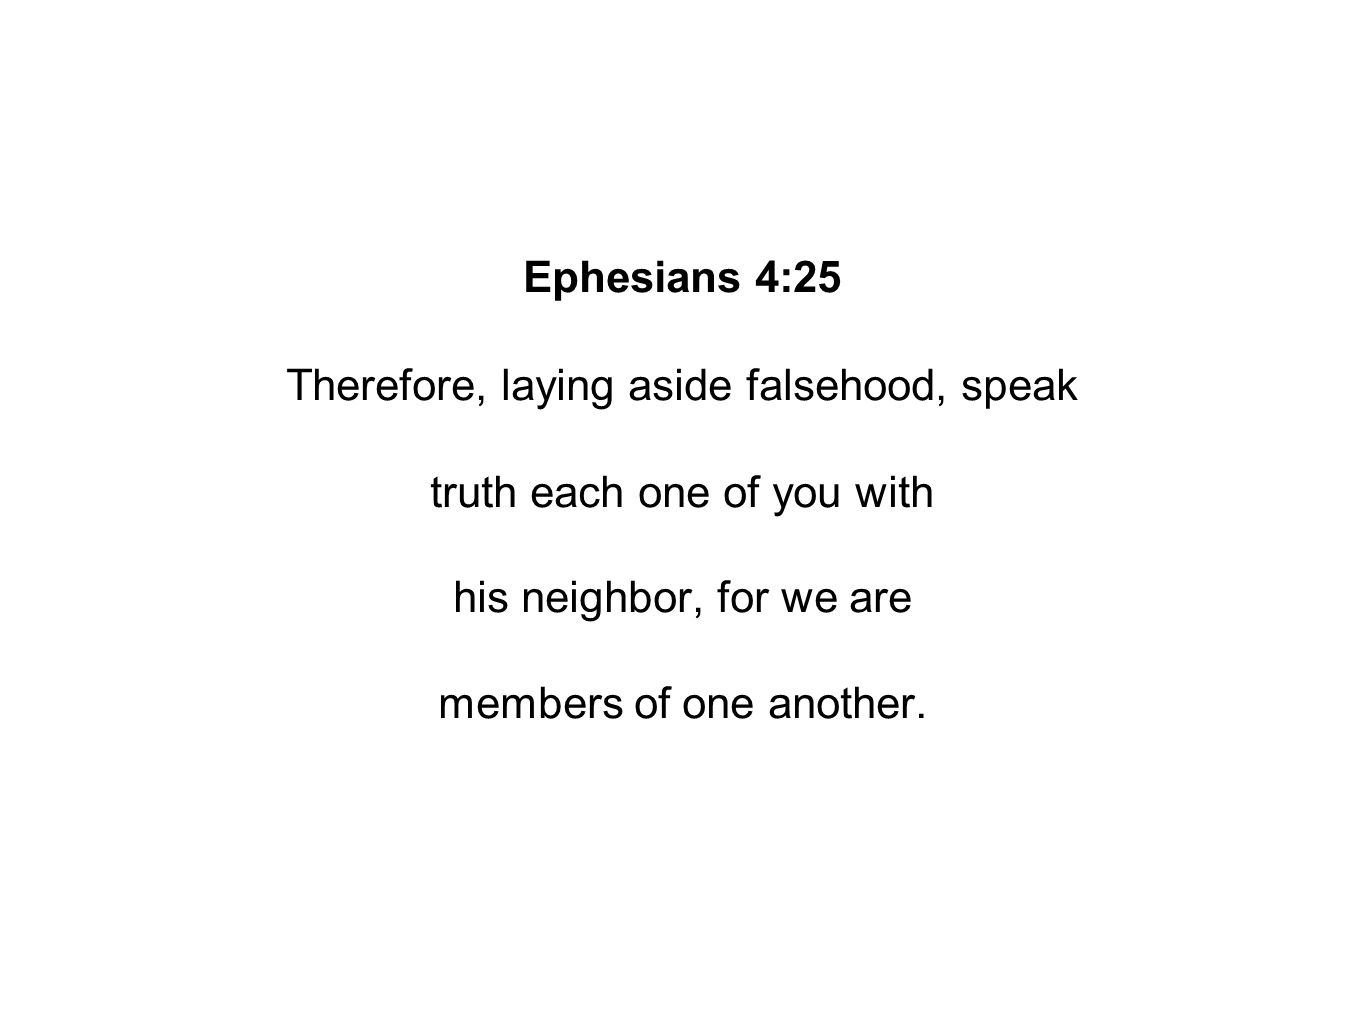 Ephesians 4:25 Therefore, laying aside falsehood, speak truth each one of you with his neighbor, for we are members of one another.